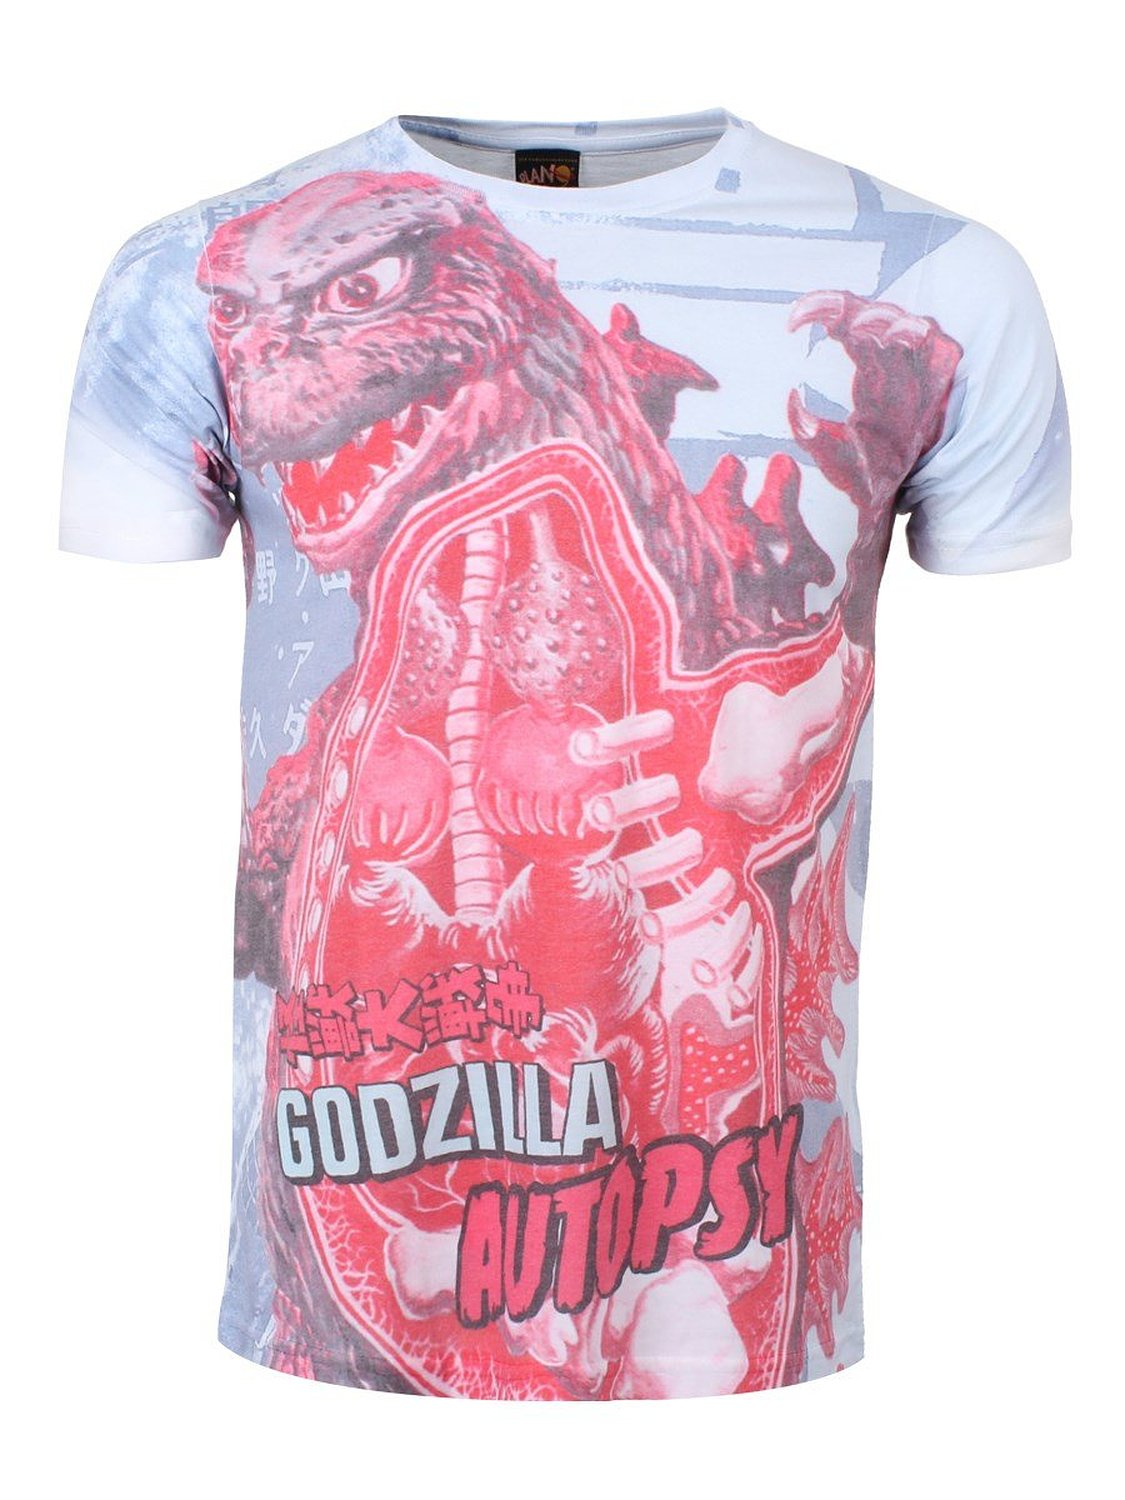 Amazon.com: godzilla men's autopsy all over print t